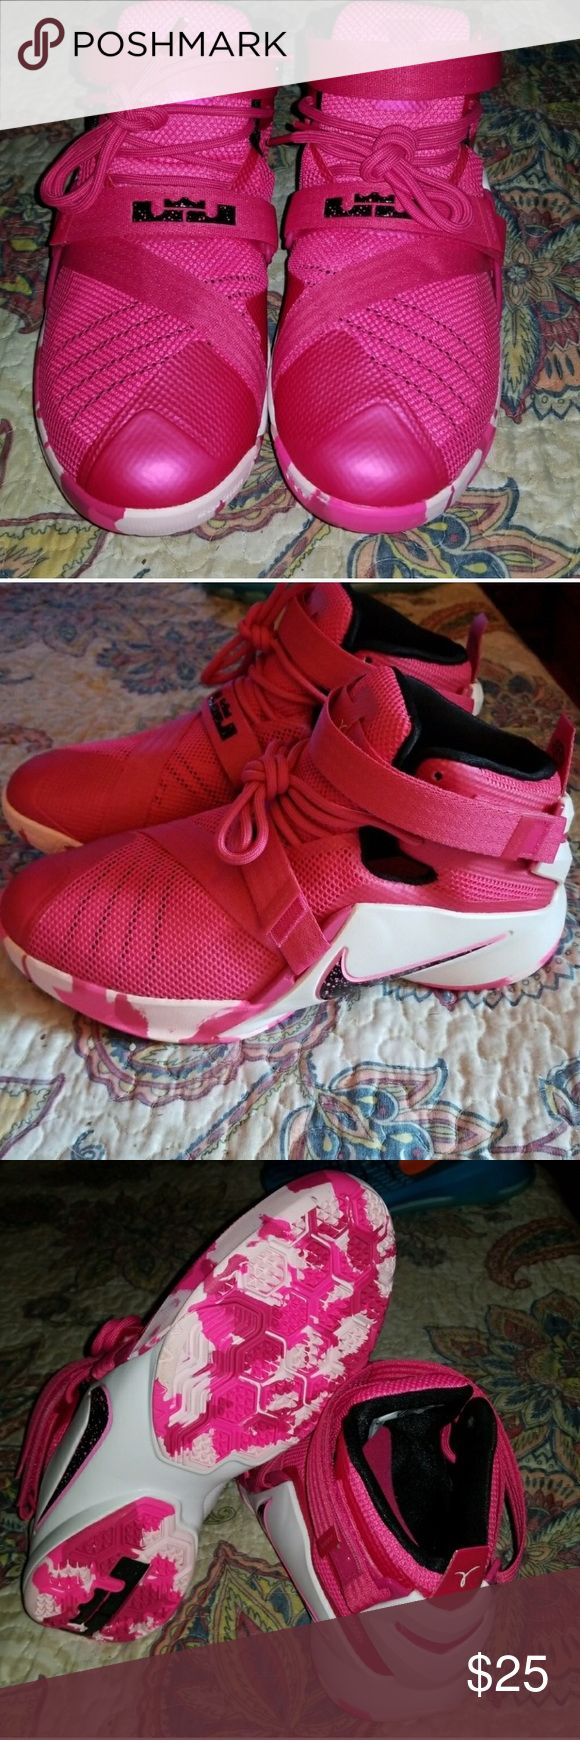 Nike Pink Lebron Shoes Worn lightly Nike Shoes Sneakers